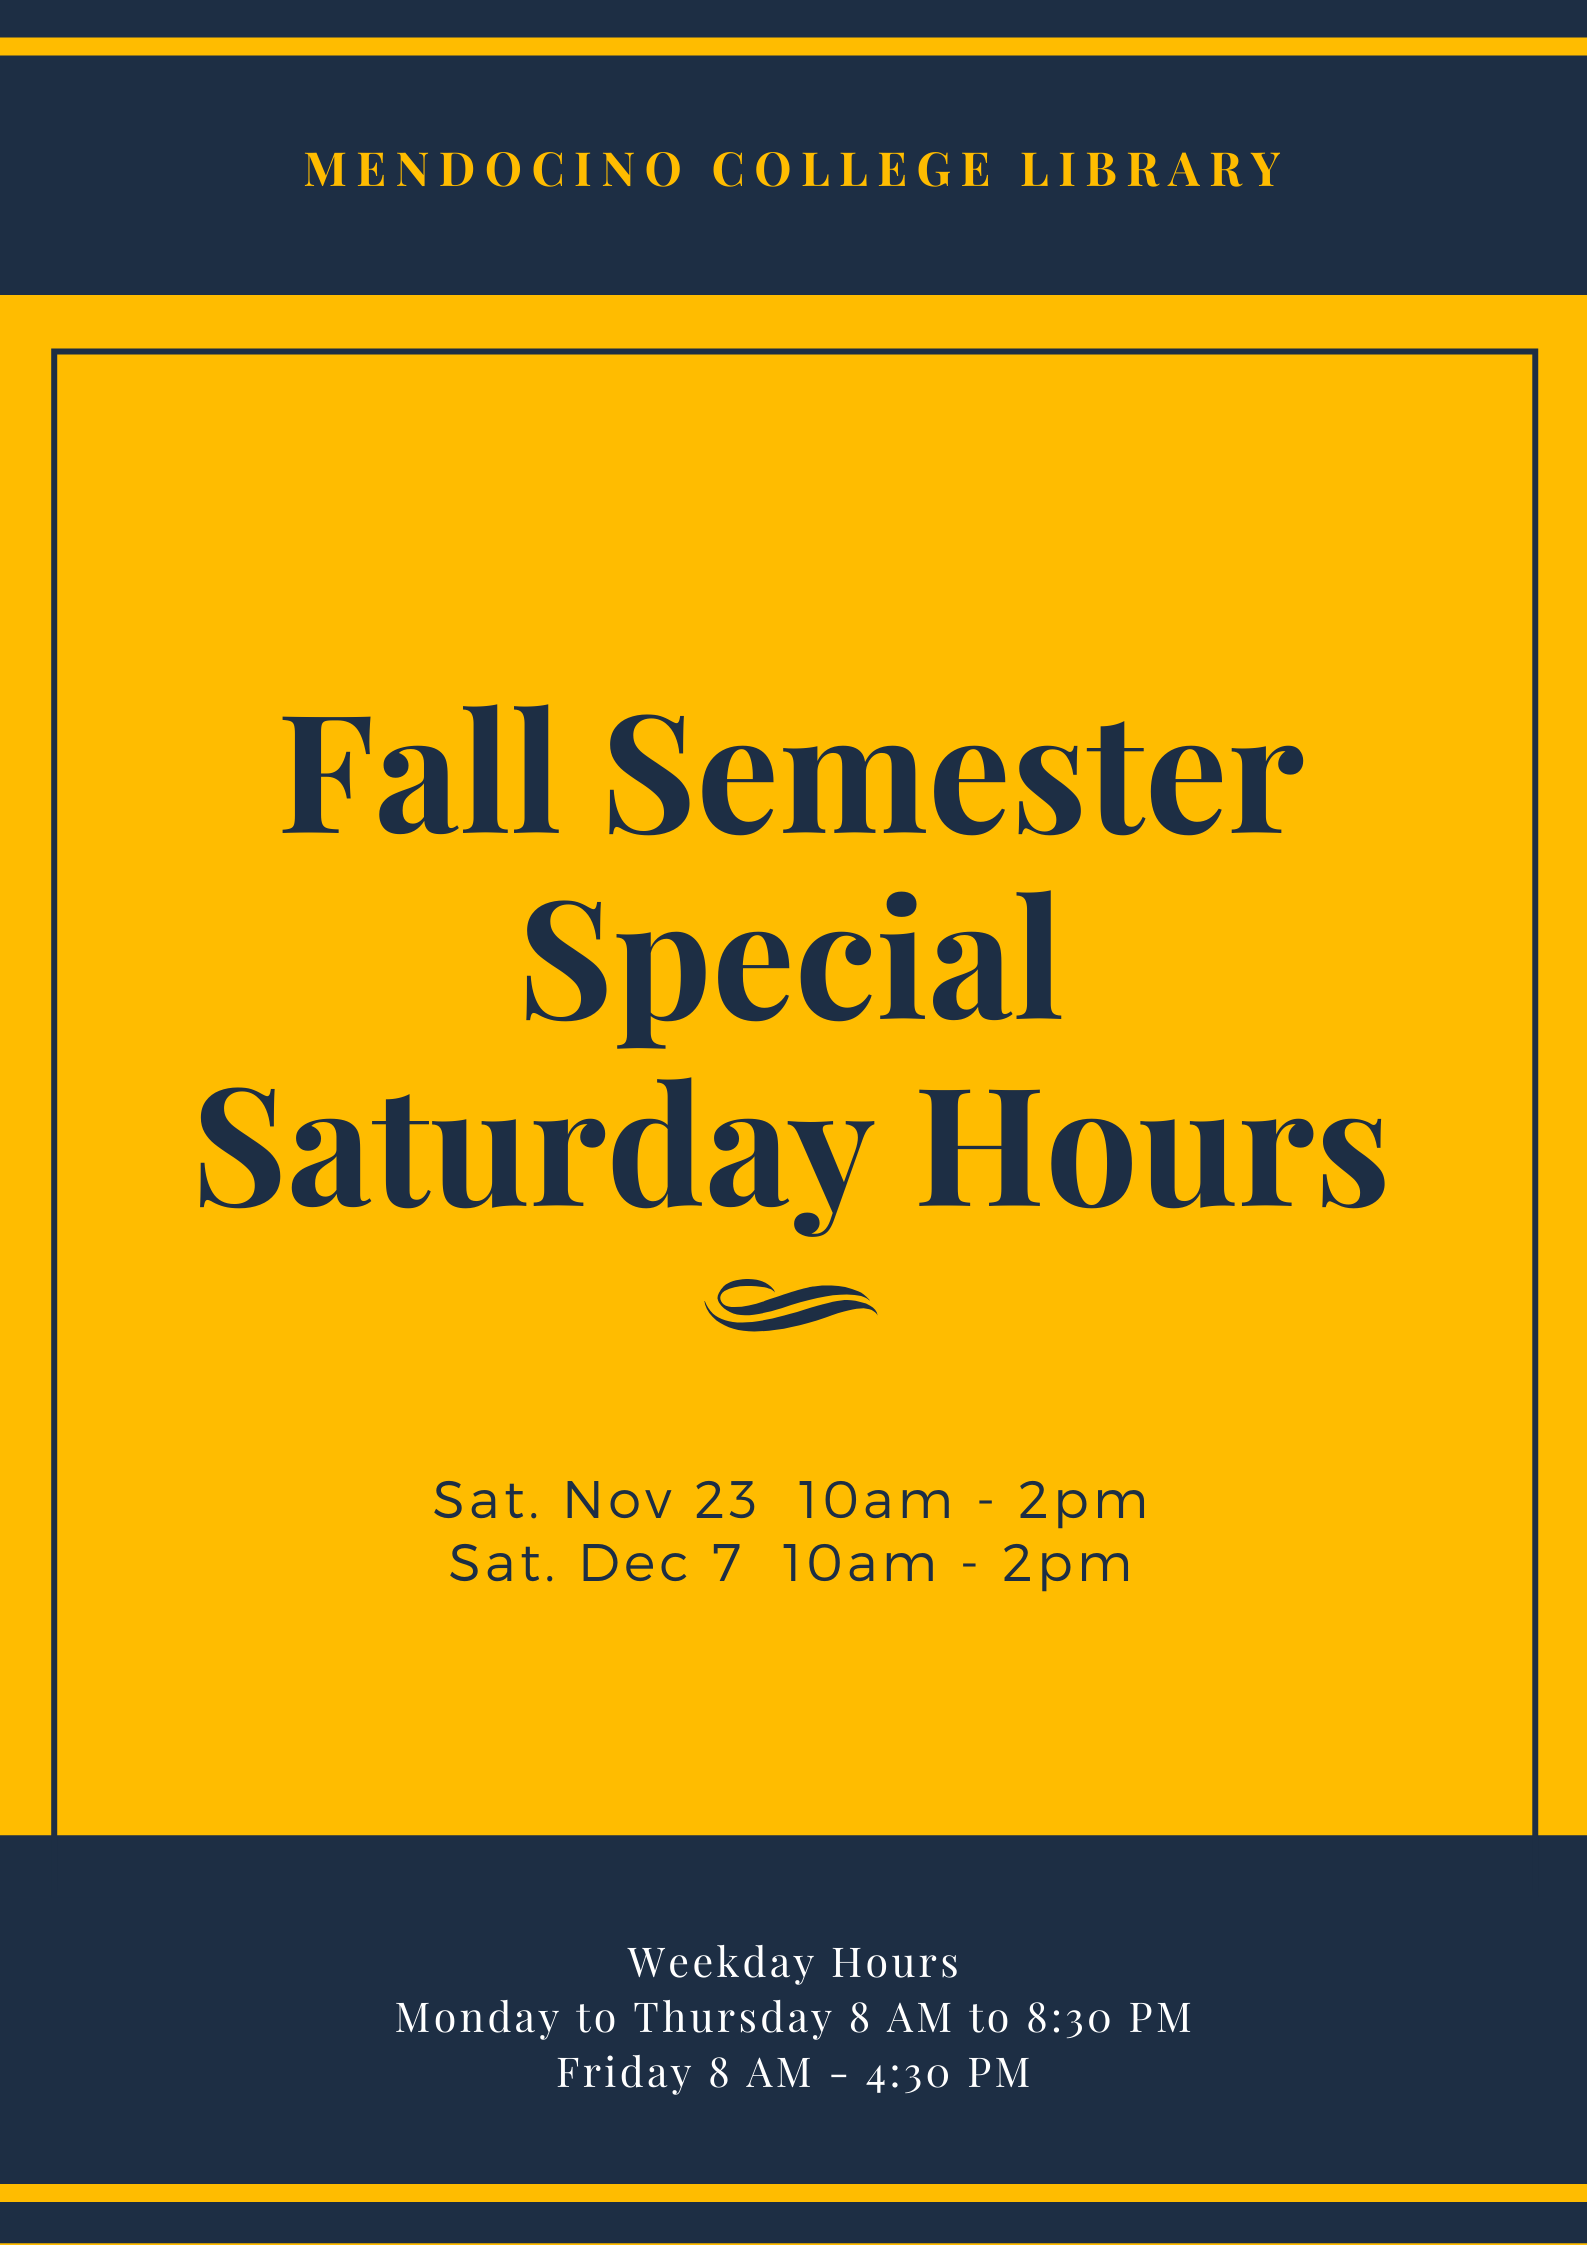 Fall 2019 Saturday Hours